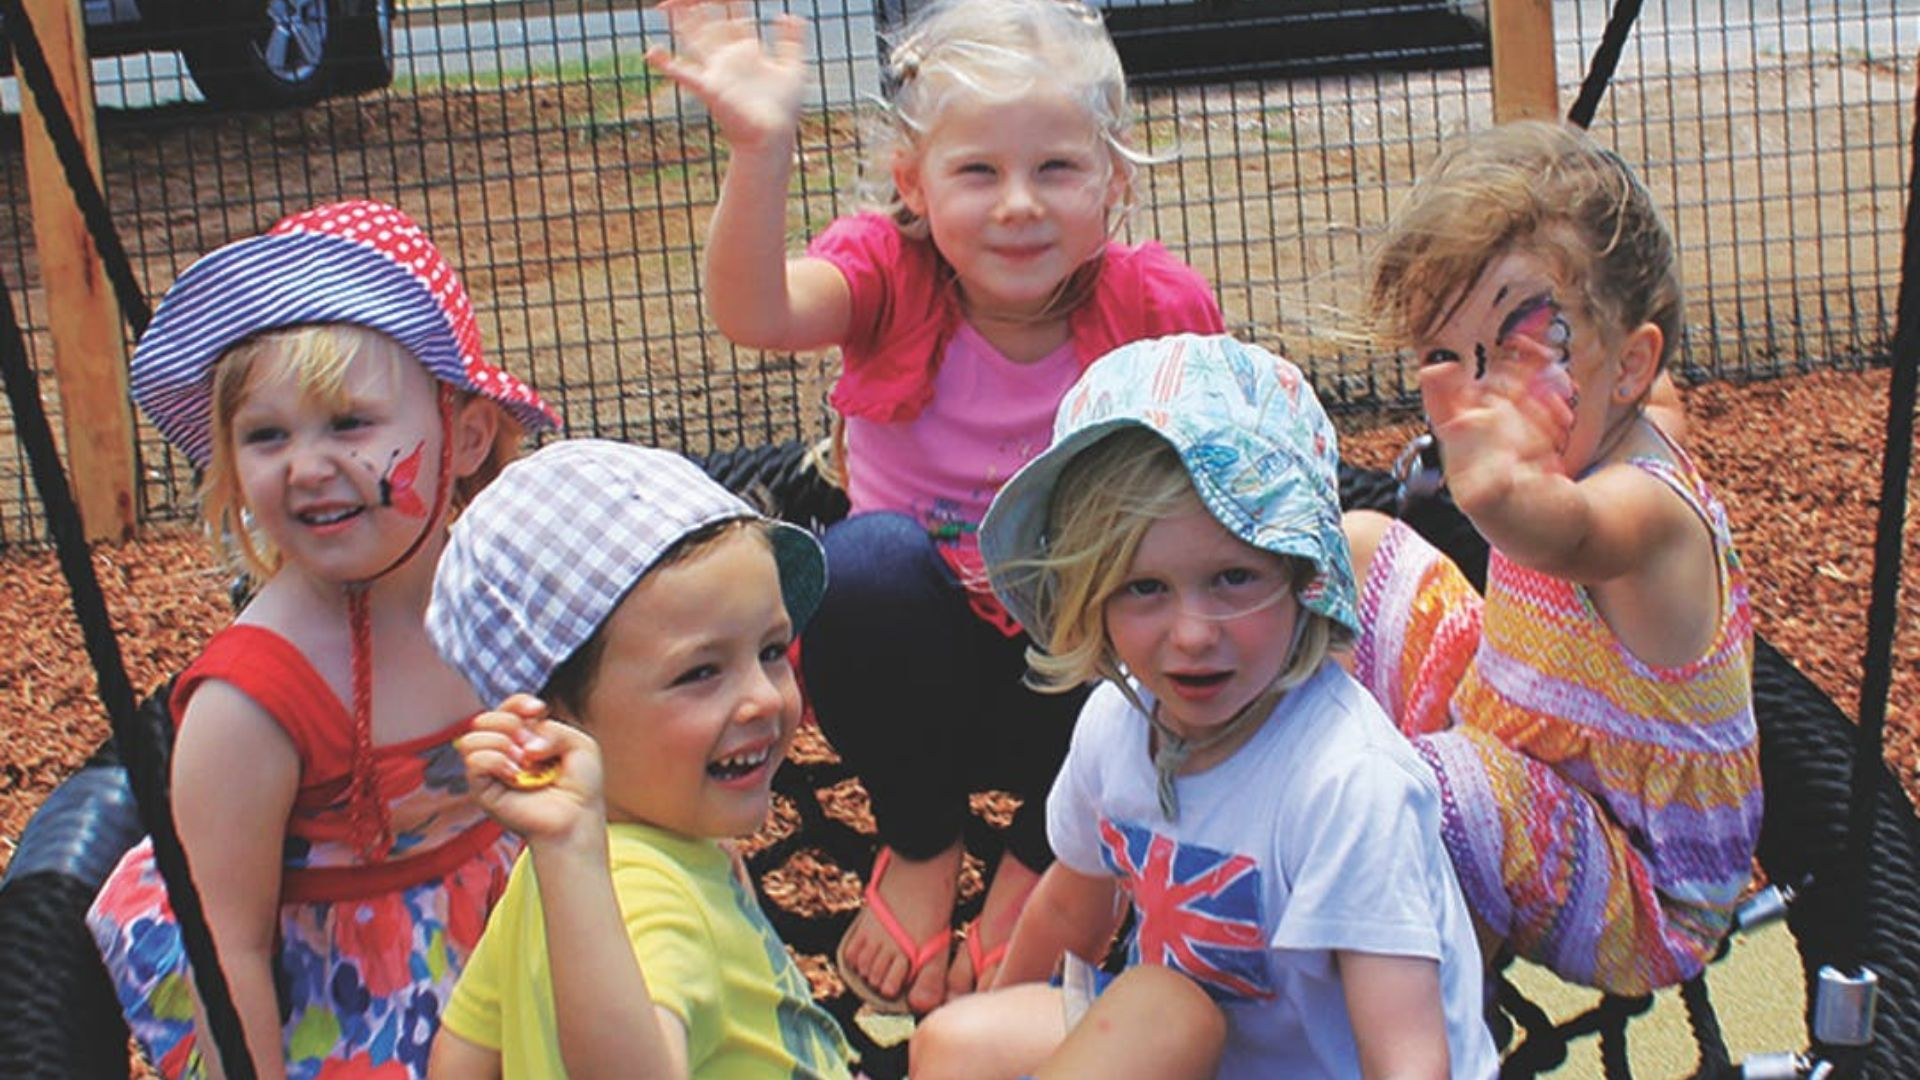 Charles Sturt study shows playground encourages inclusion